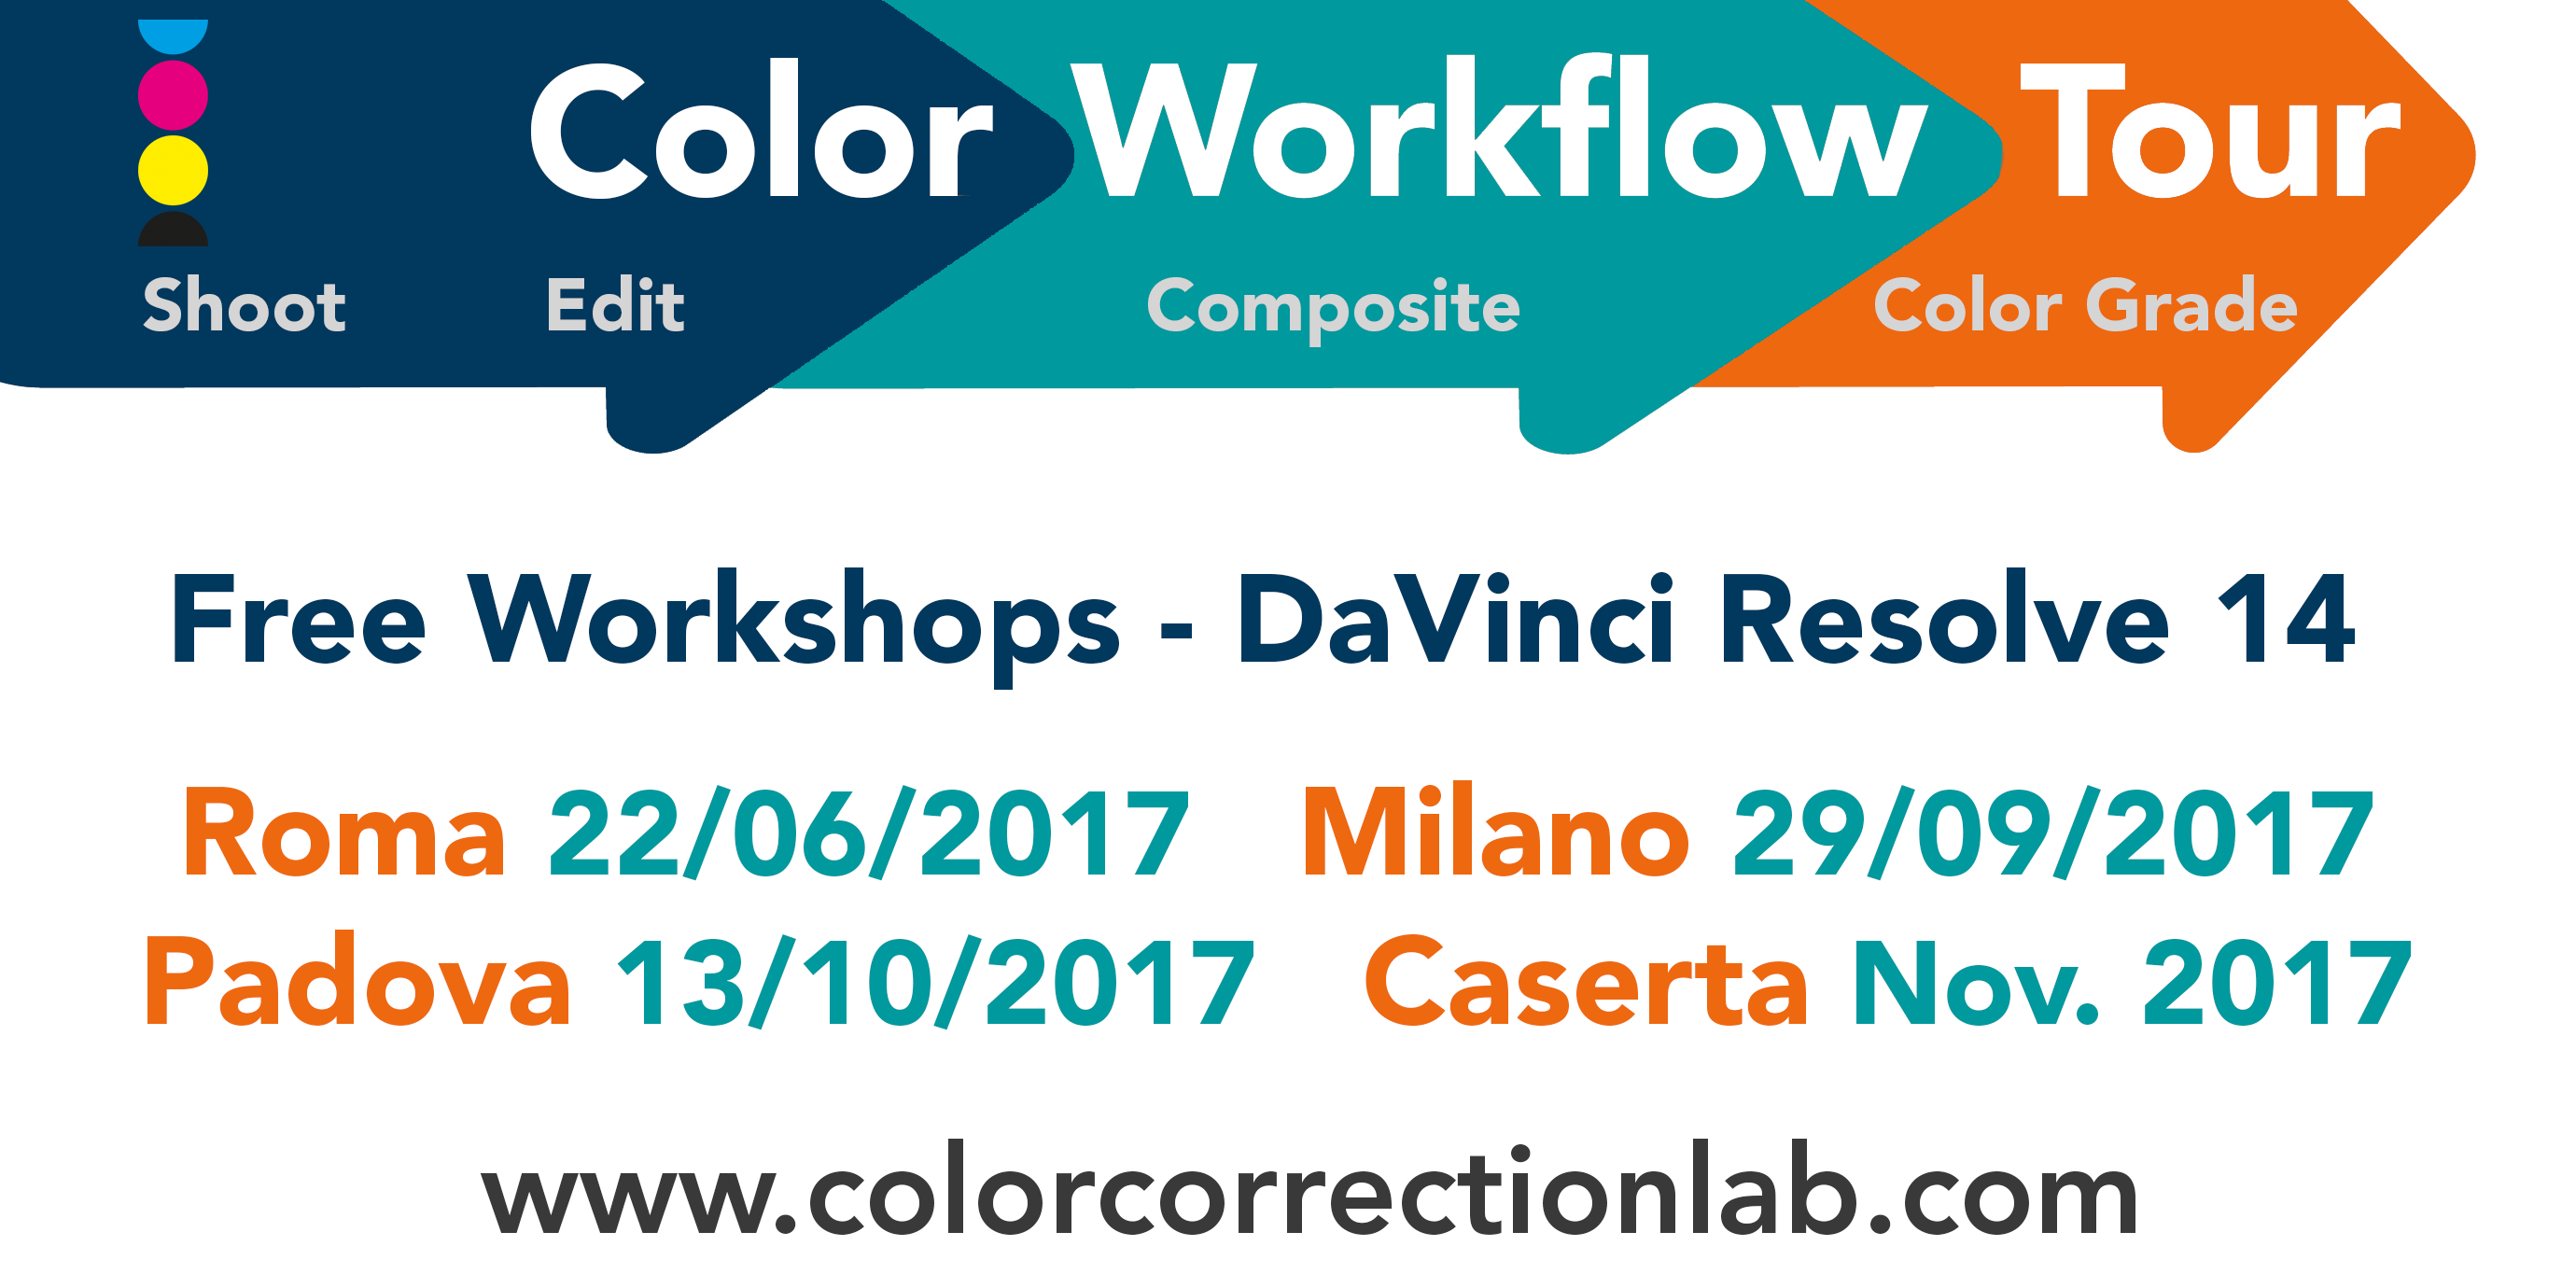 Color Workflow Tour